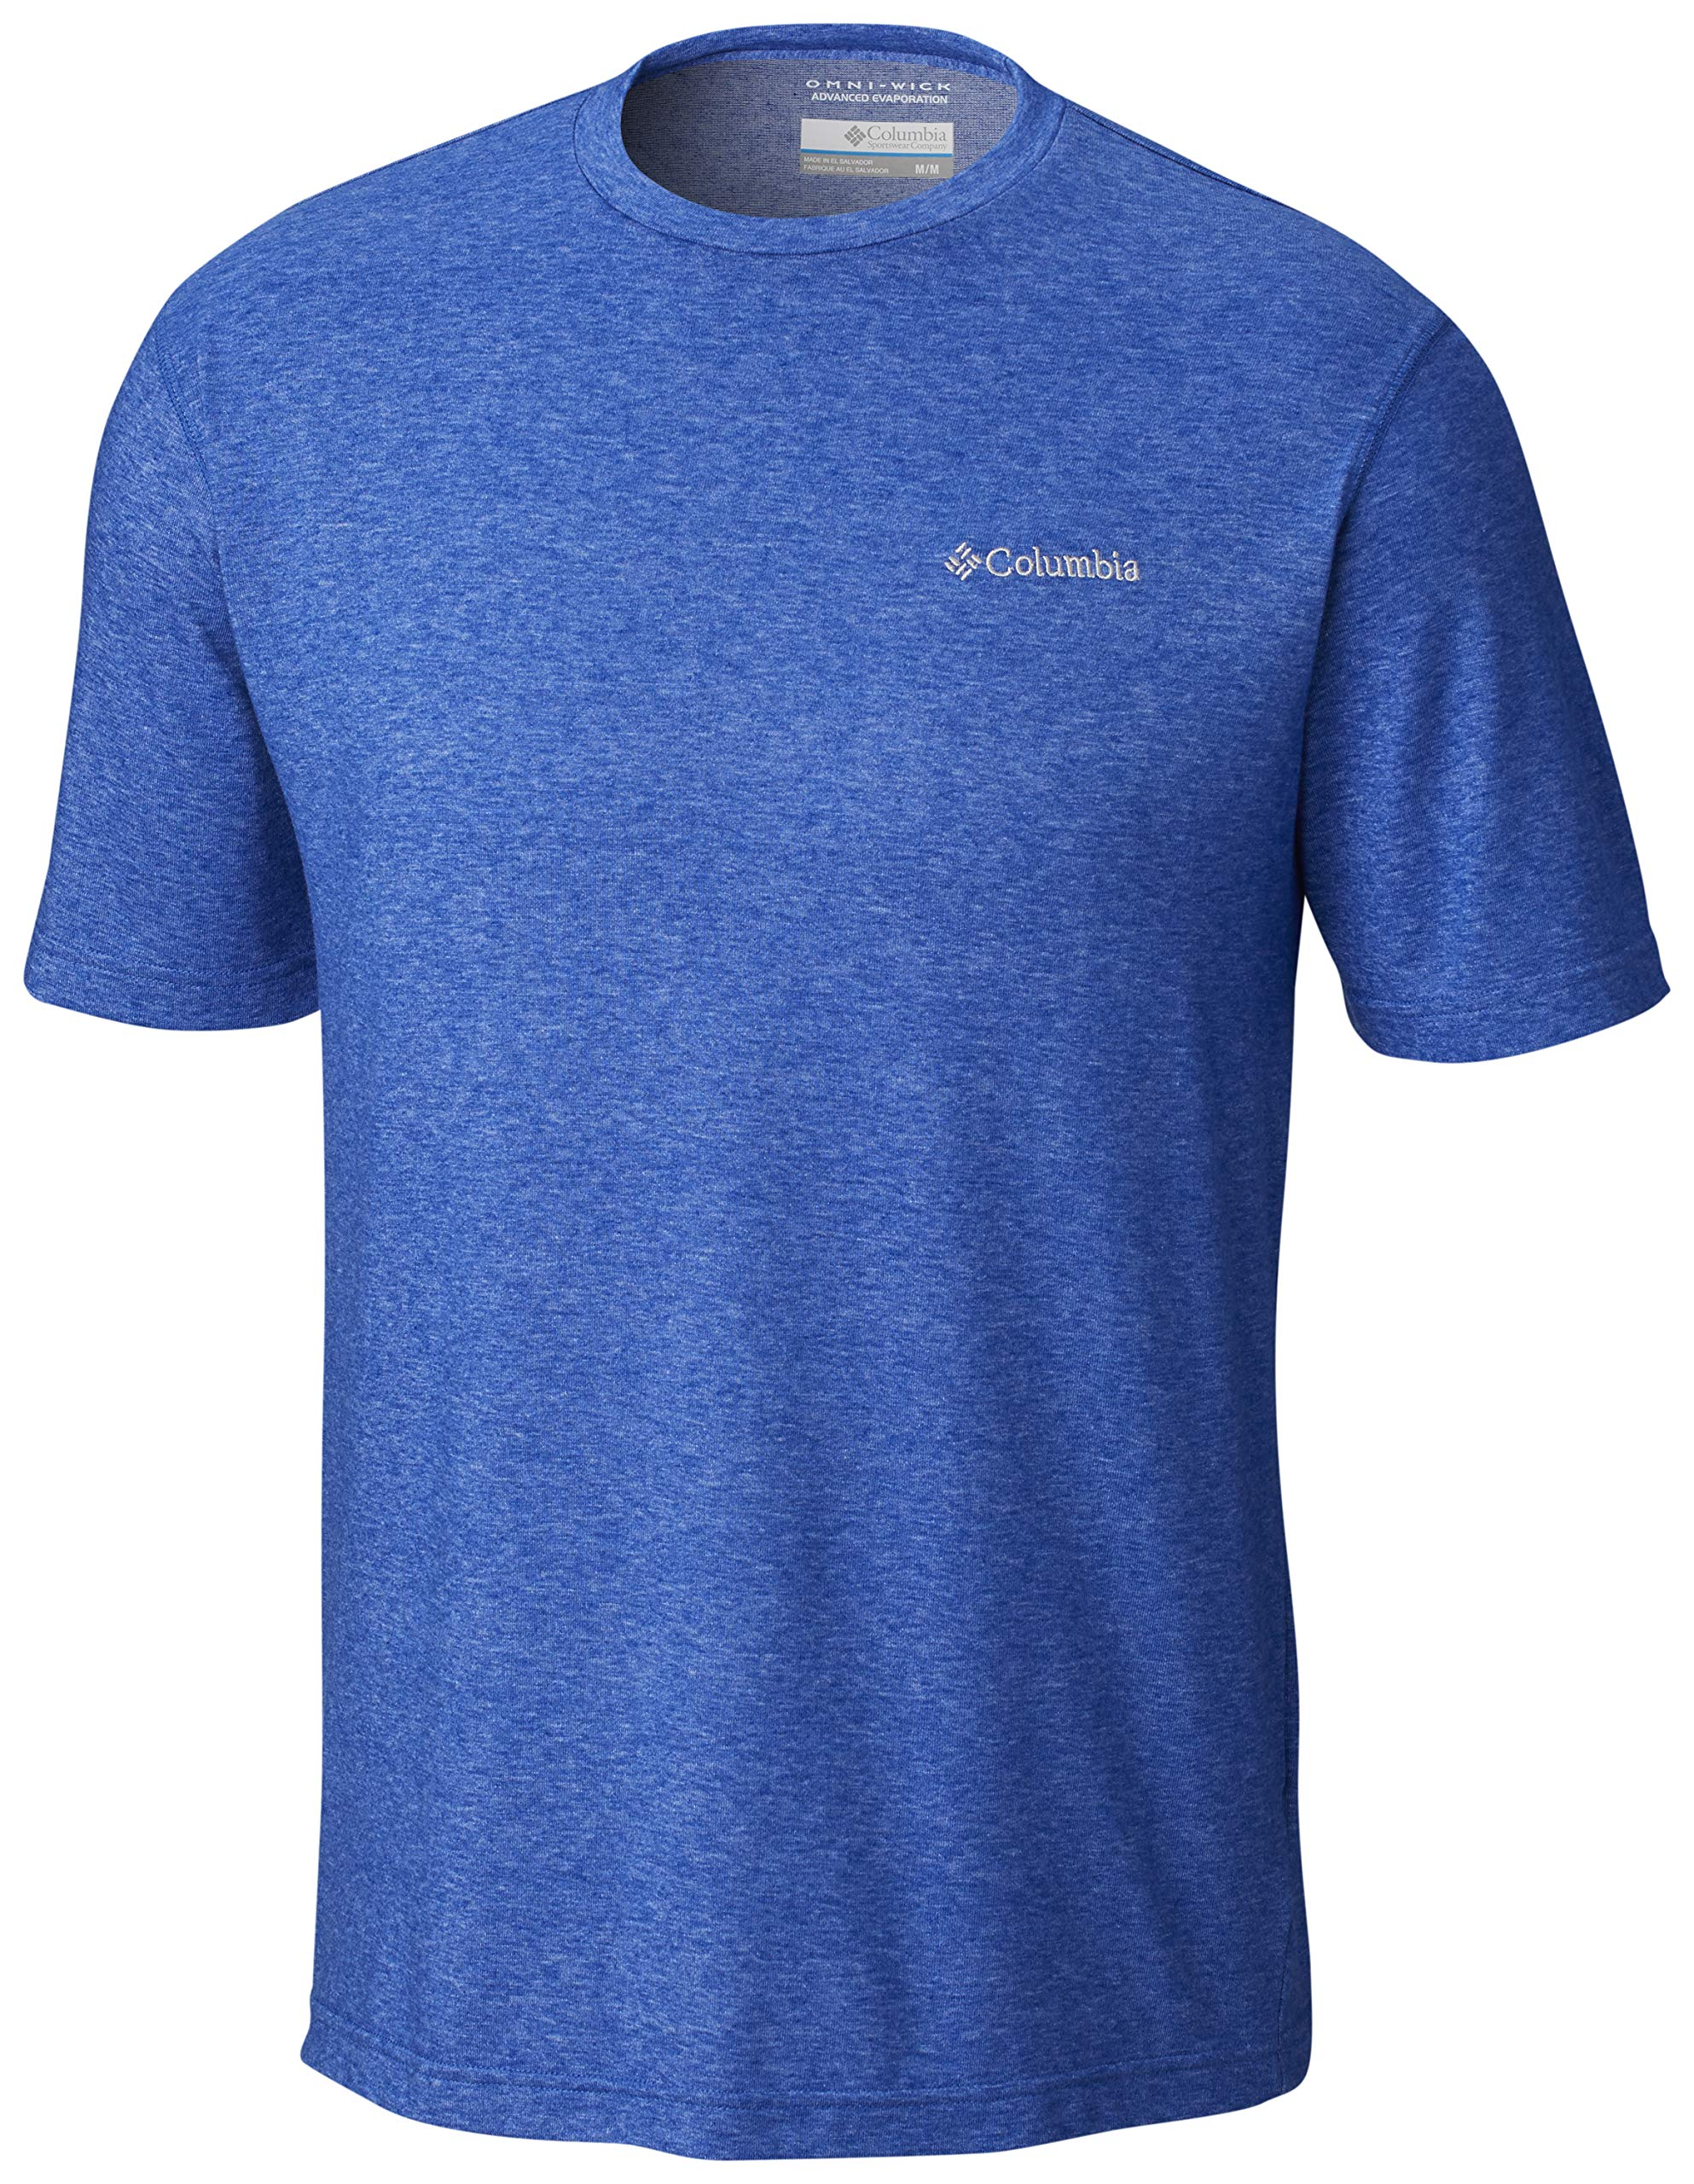 Columbia Men's Thistletown Park Crew, Sun Protection, Breathable, blue, Azul Heather